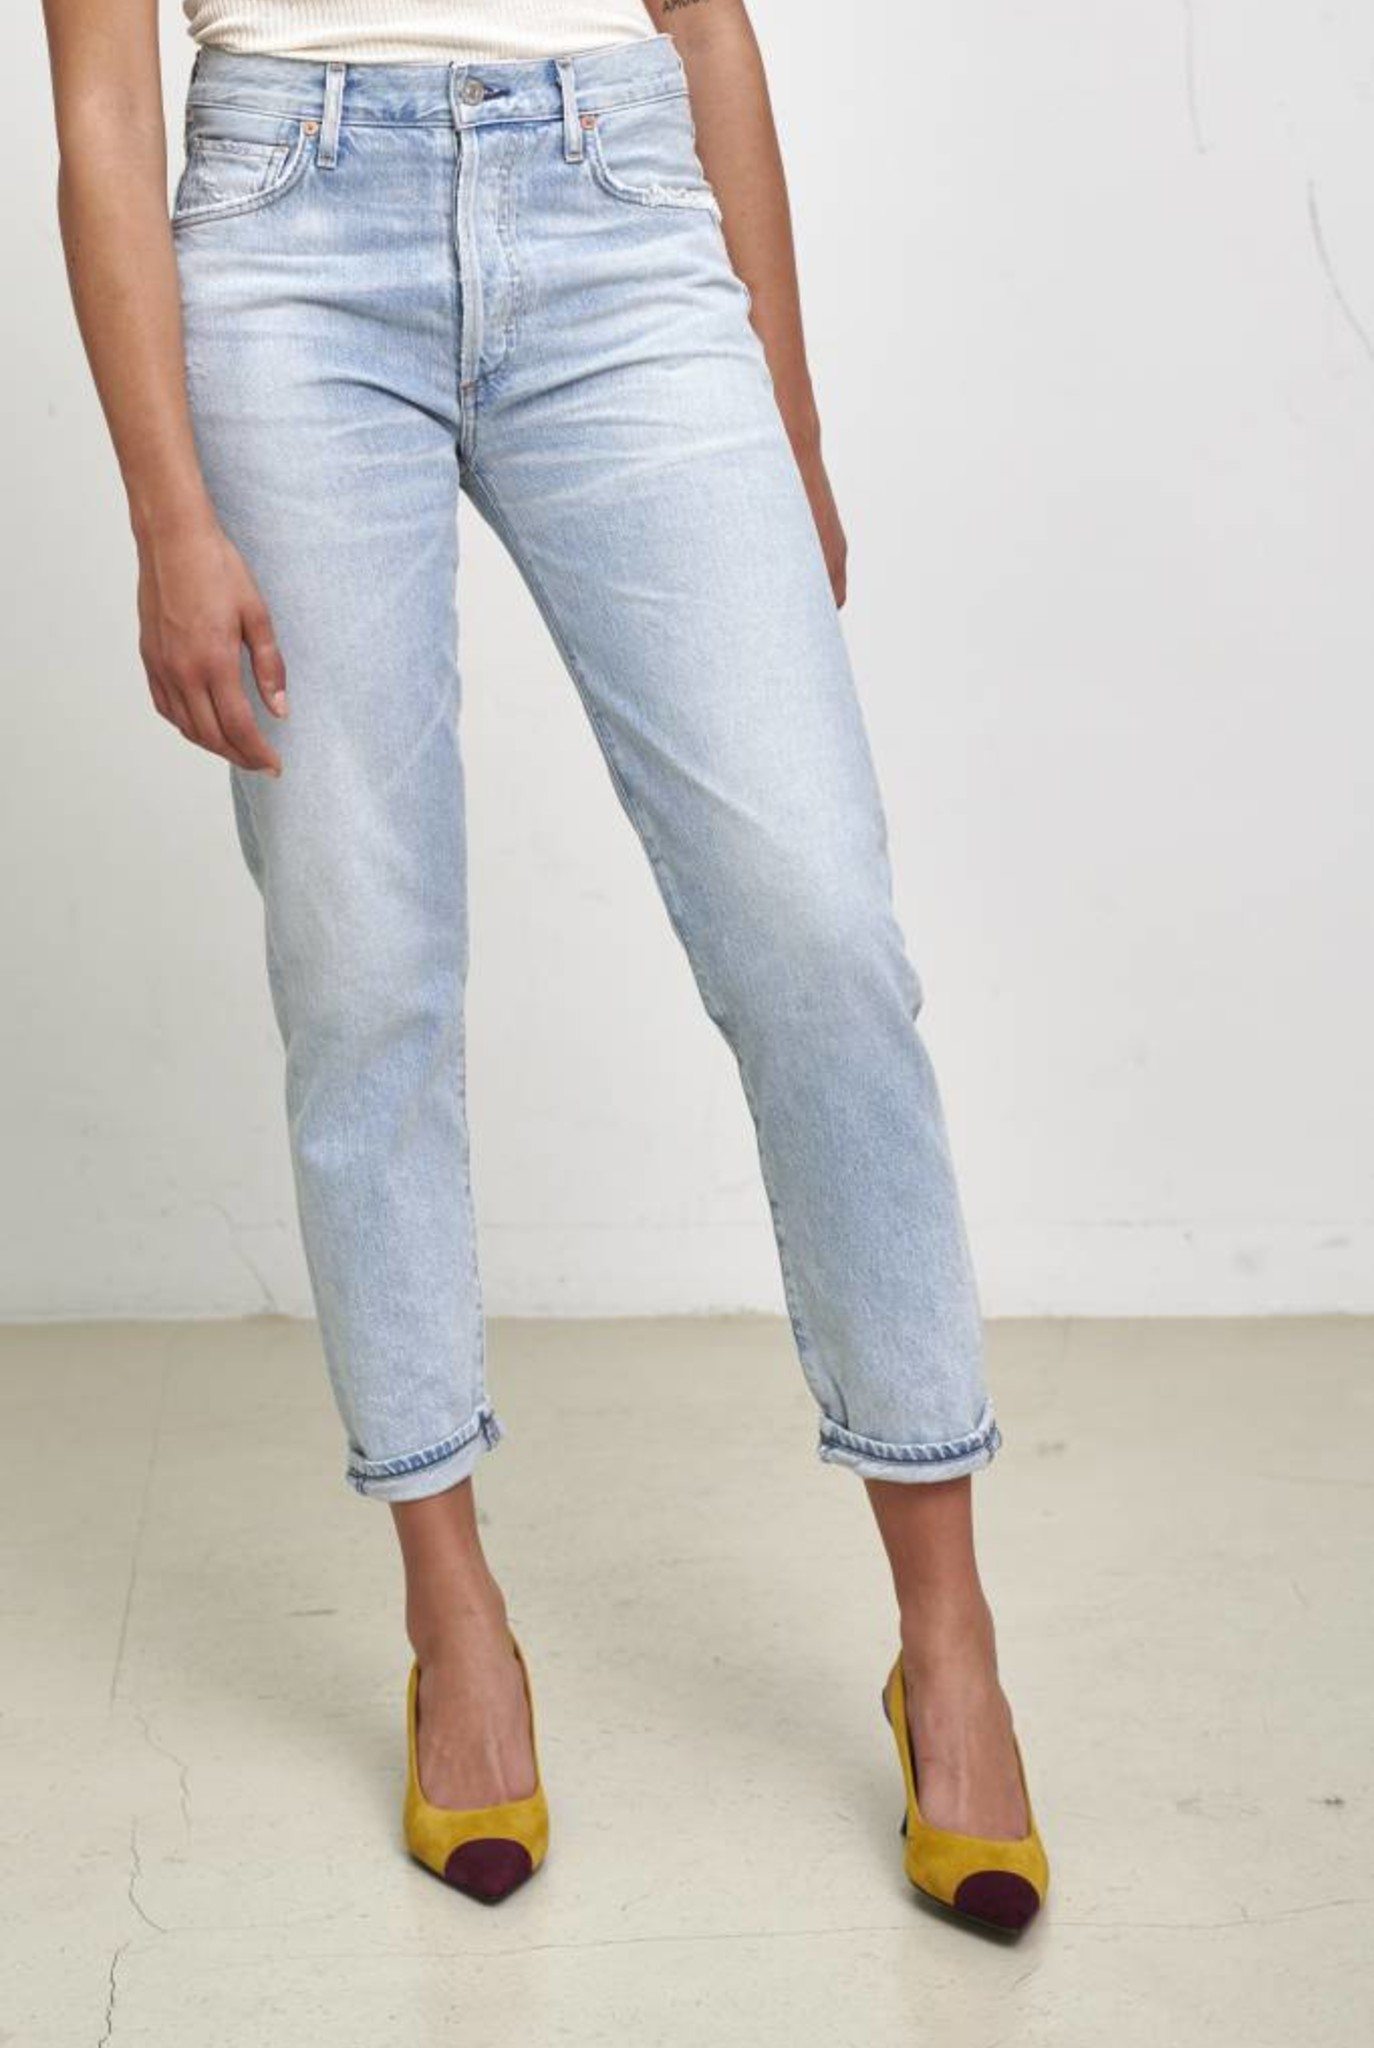 Liya jeans rock-on